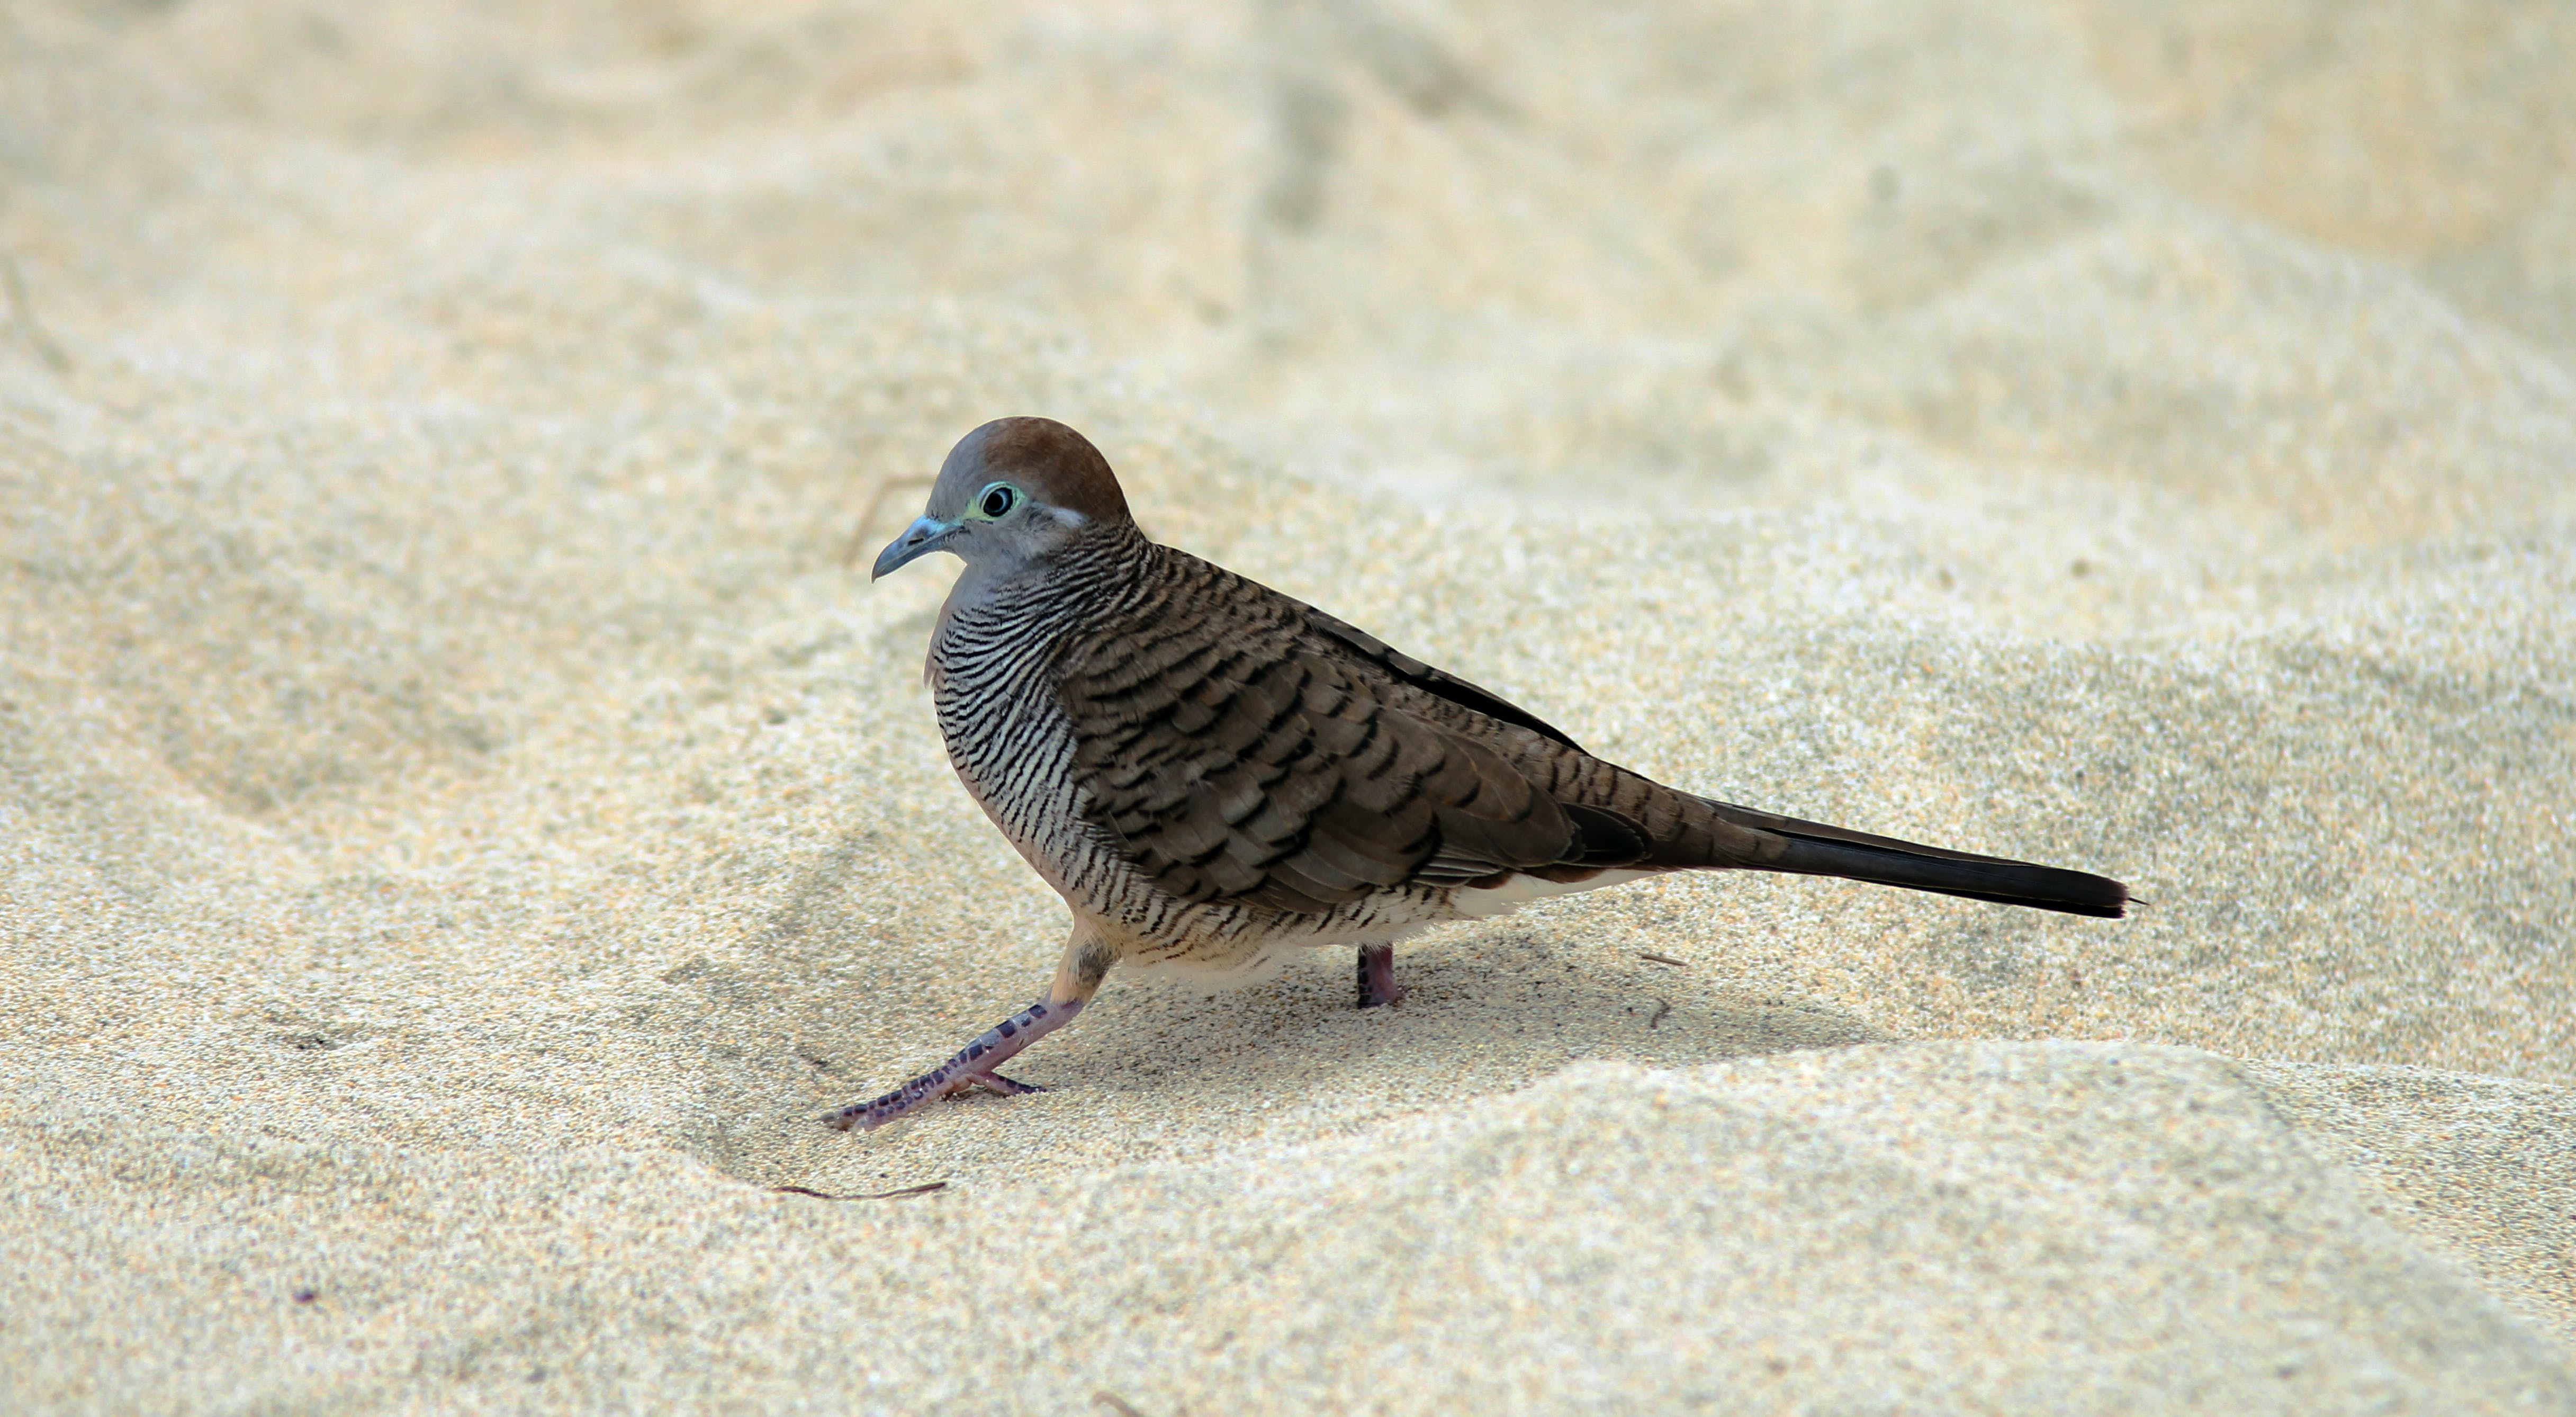 Gray and Black Bird on White Sand during Daytime